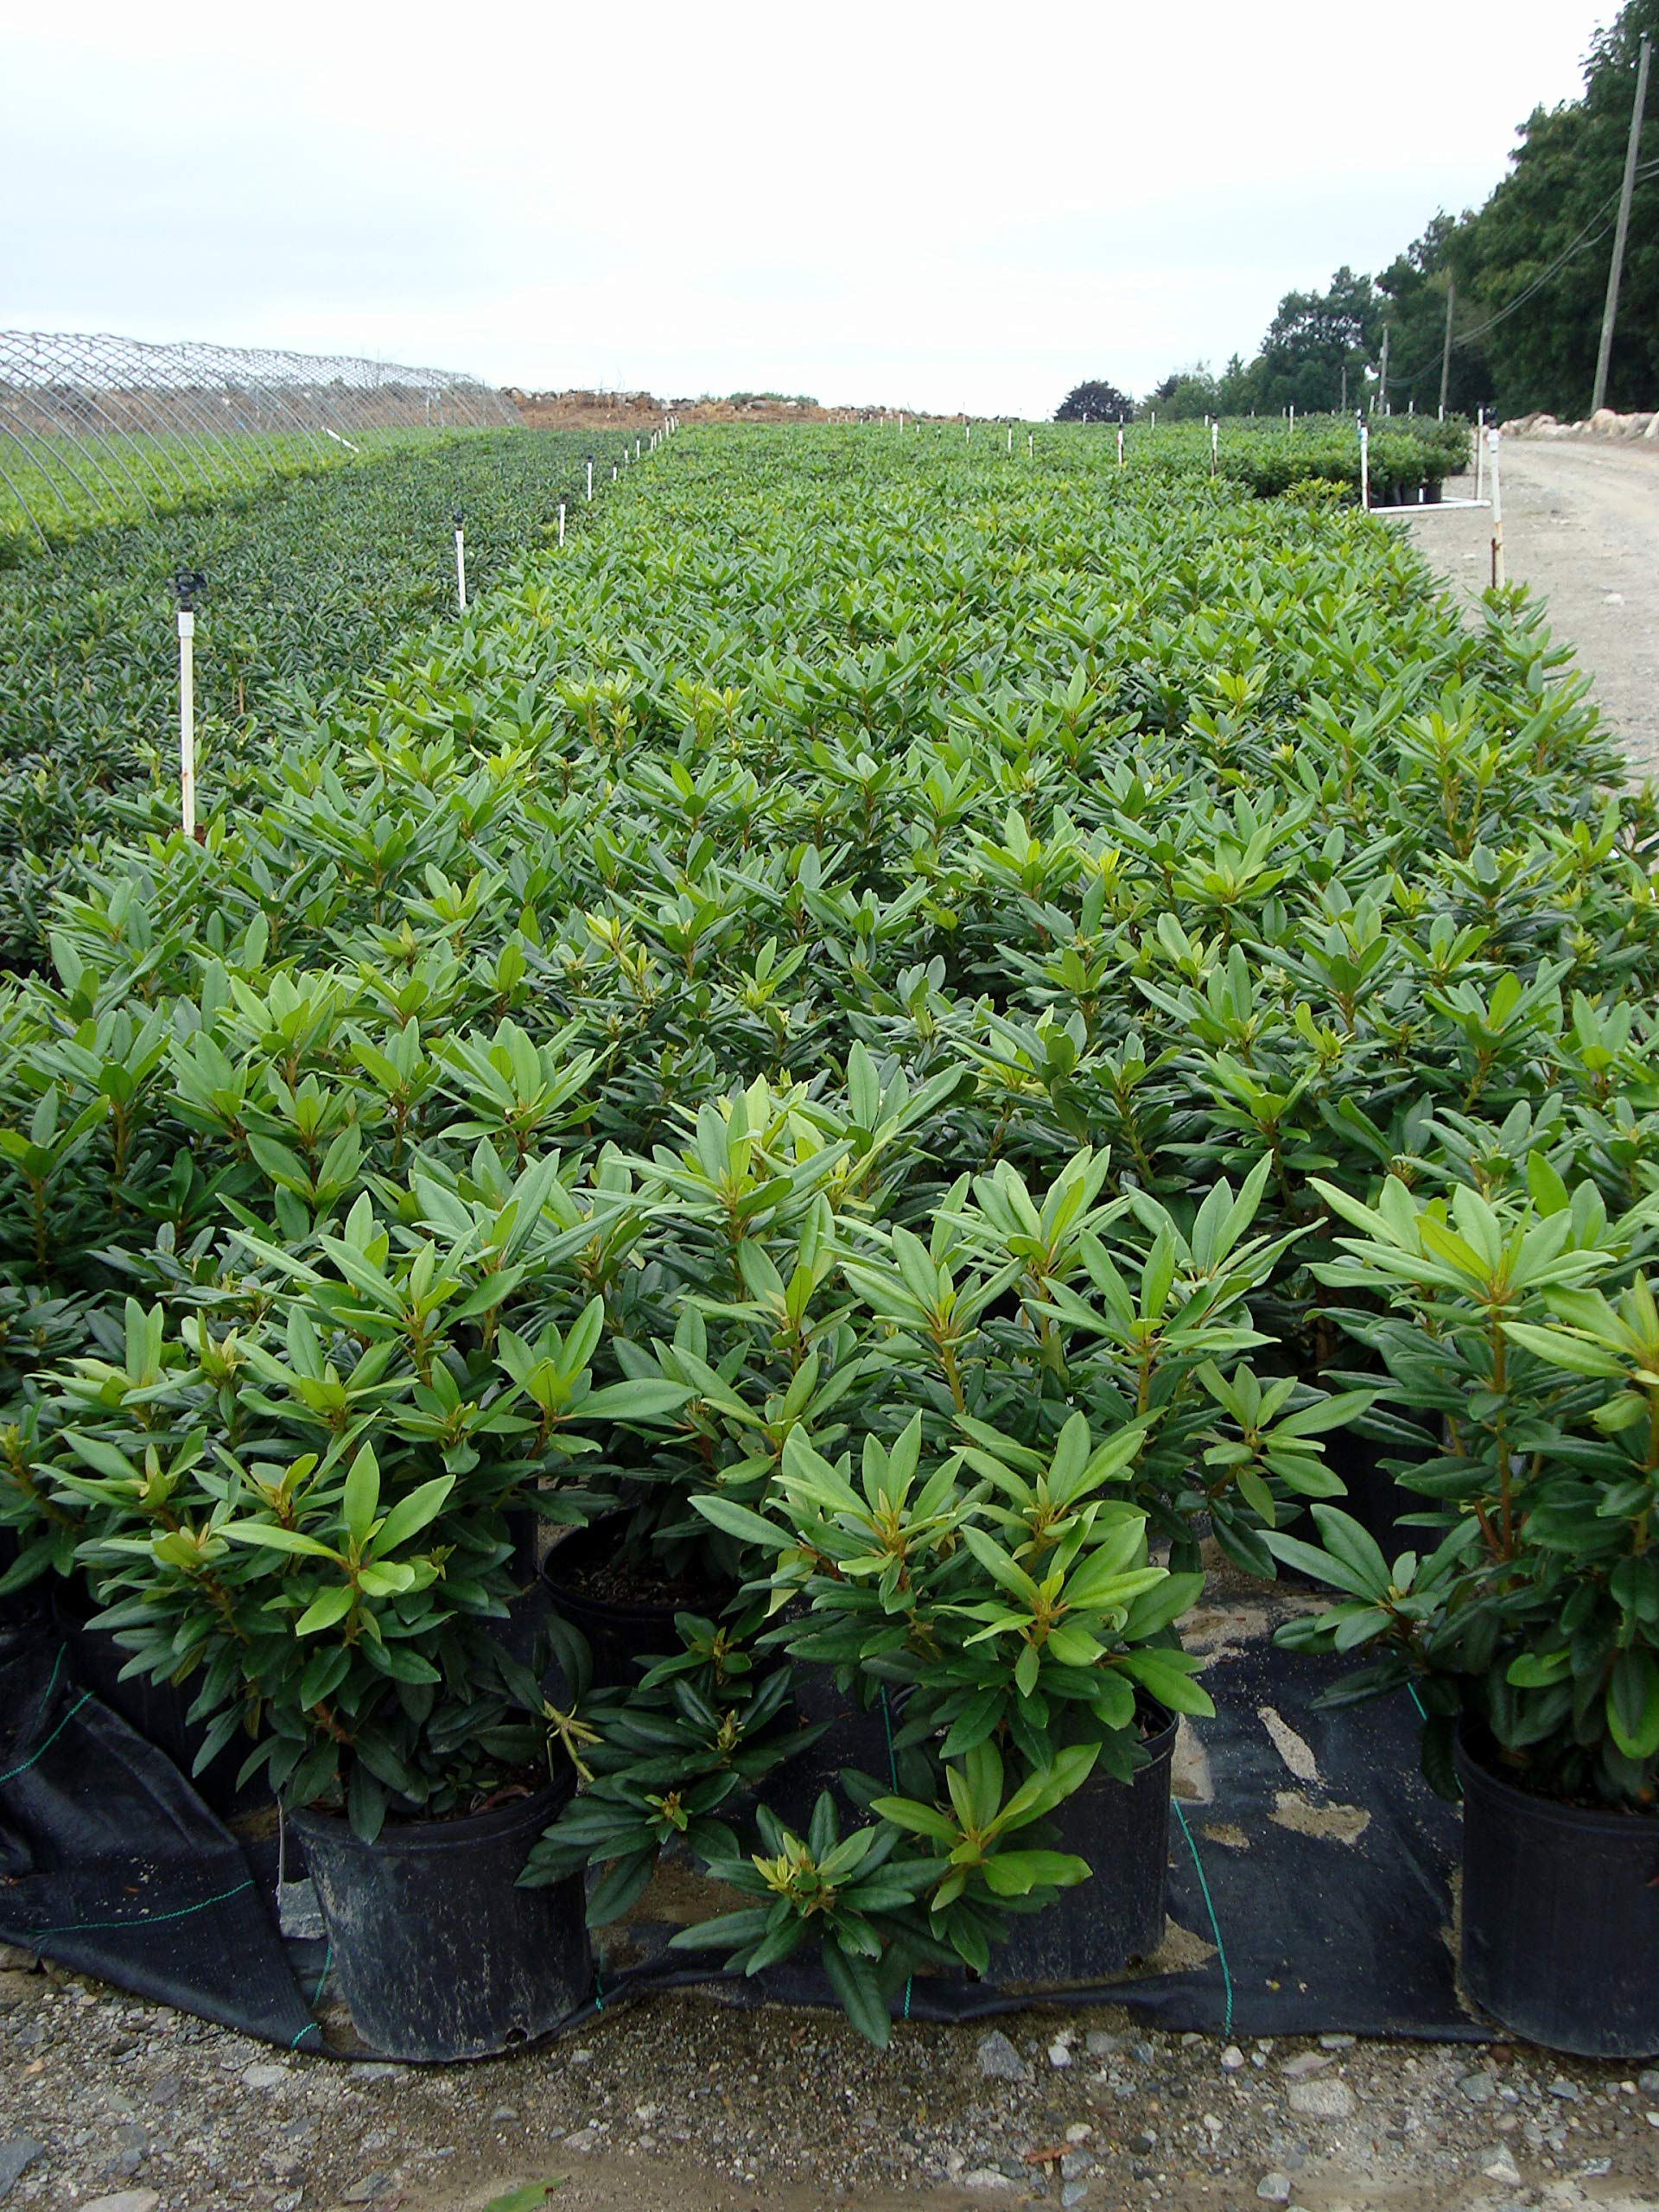 Rhododendron 'Purple Passion' (Rhododendron) Evergreen, purple flowers, #2 - Size Container by Green Promise Farms (Image #4)